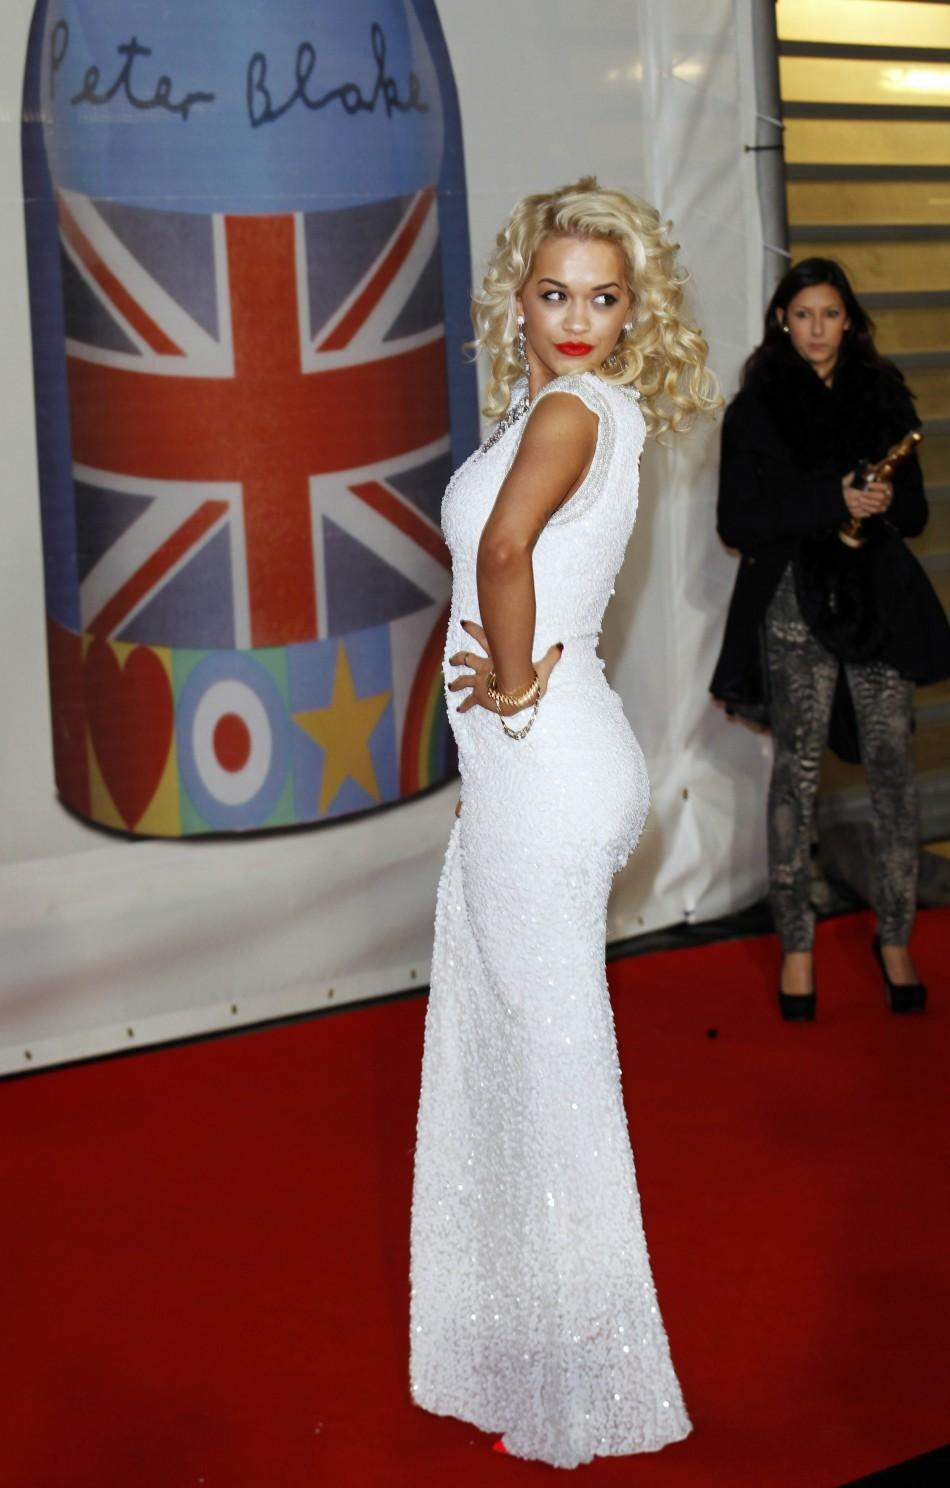 Rita Ora arrives for the BRIT Music Awards at the O2 Arena in London February 21, 2012.